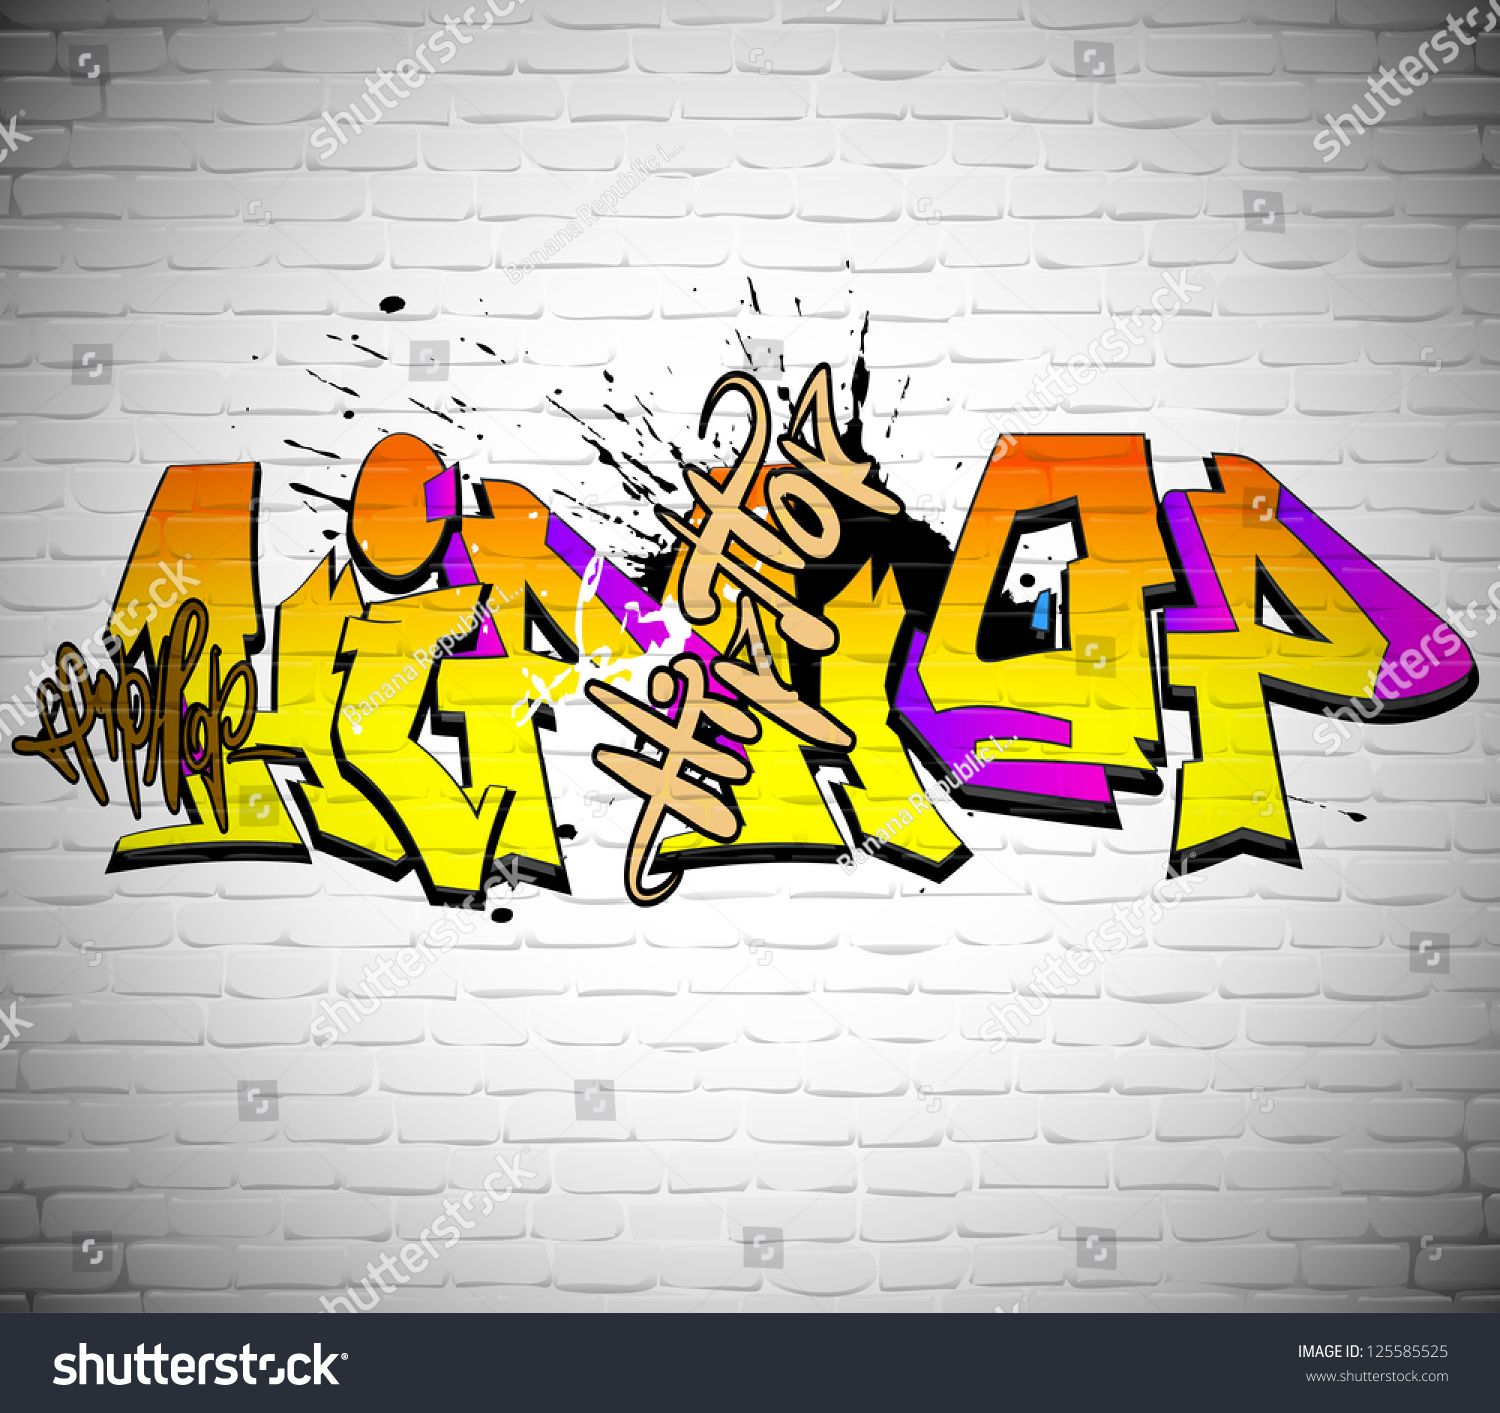 Royalty-free Graffiti wall background, urban art #125585525 Stock ...